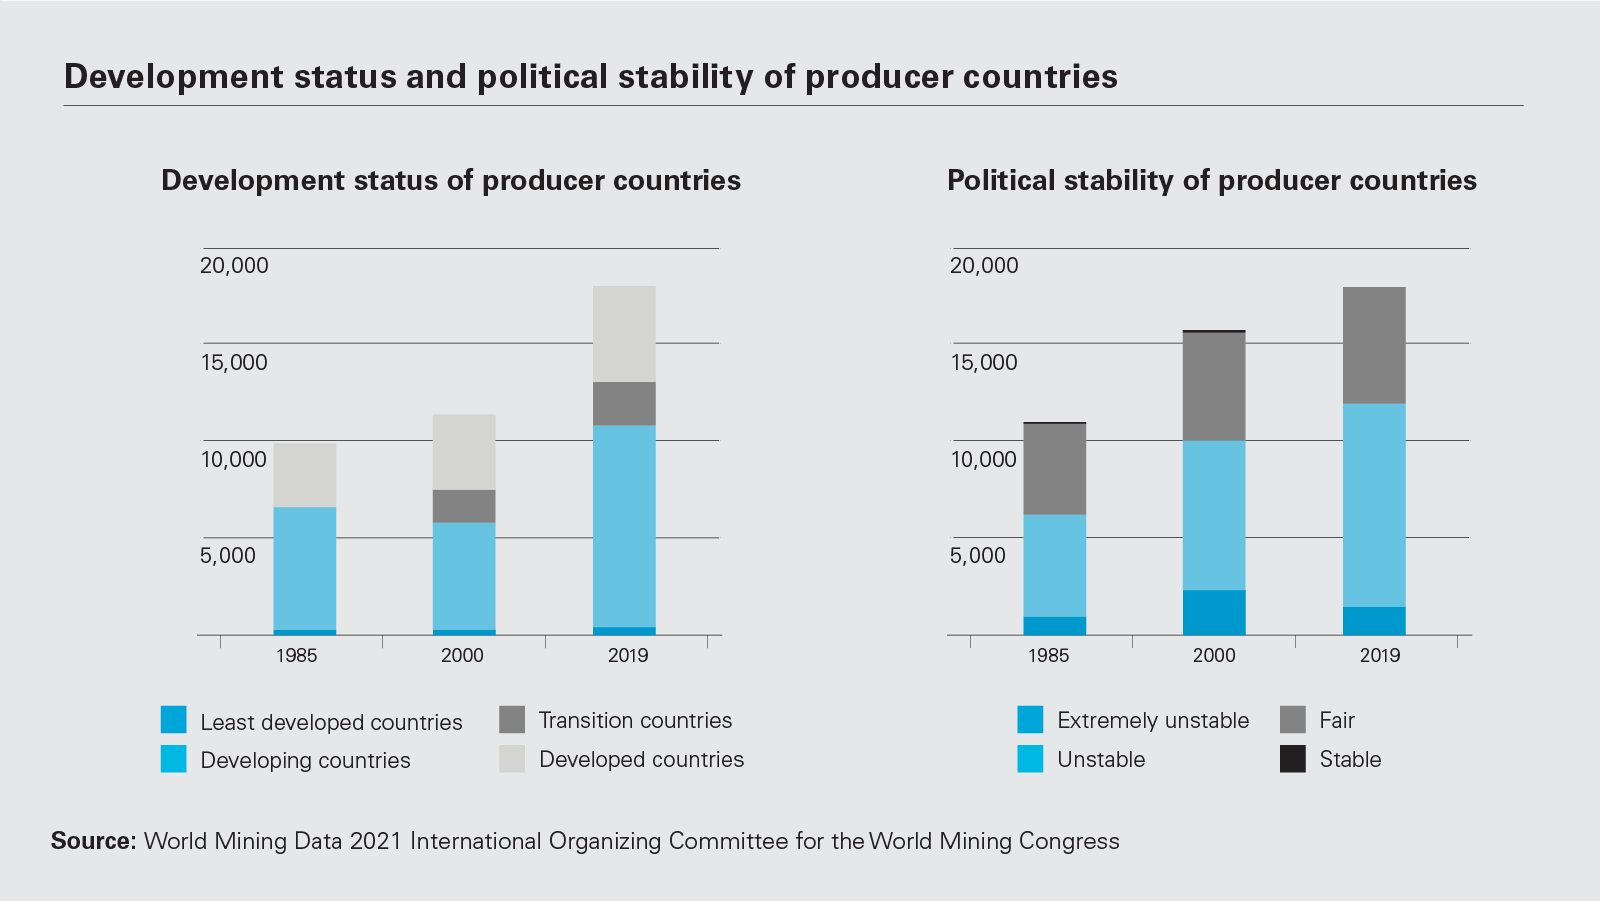 Development status and political stability of producer countries